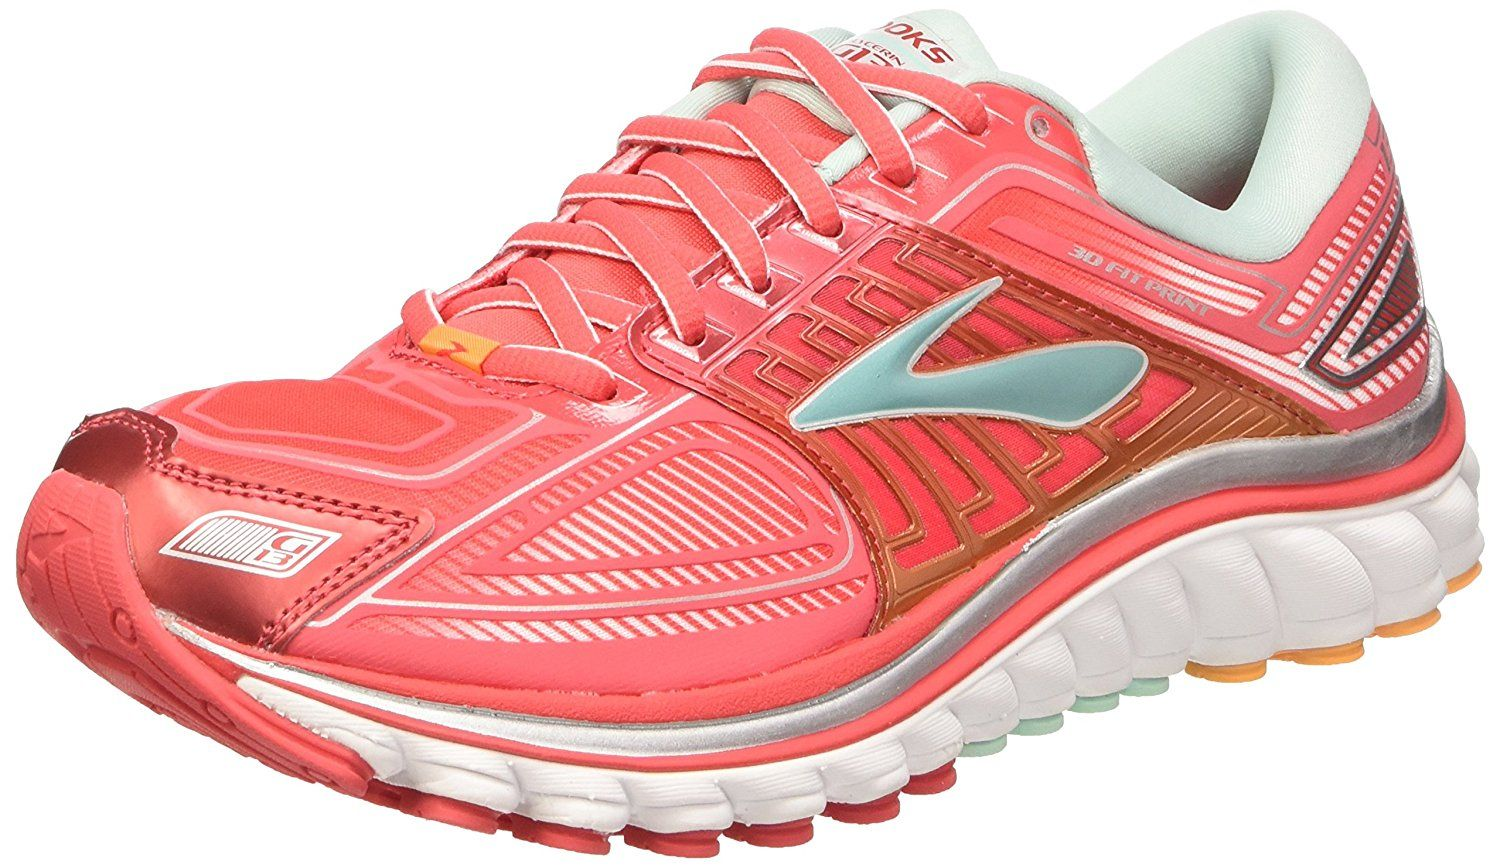 4th Best Cushioned Running Shoes Brooks Women's Glycerin 13